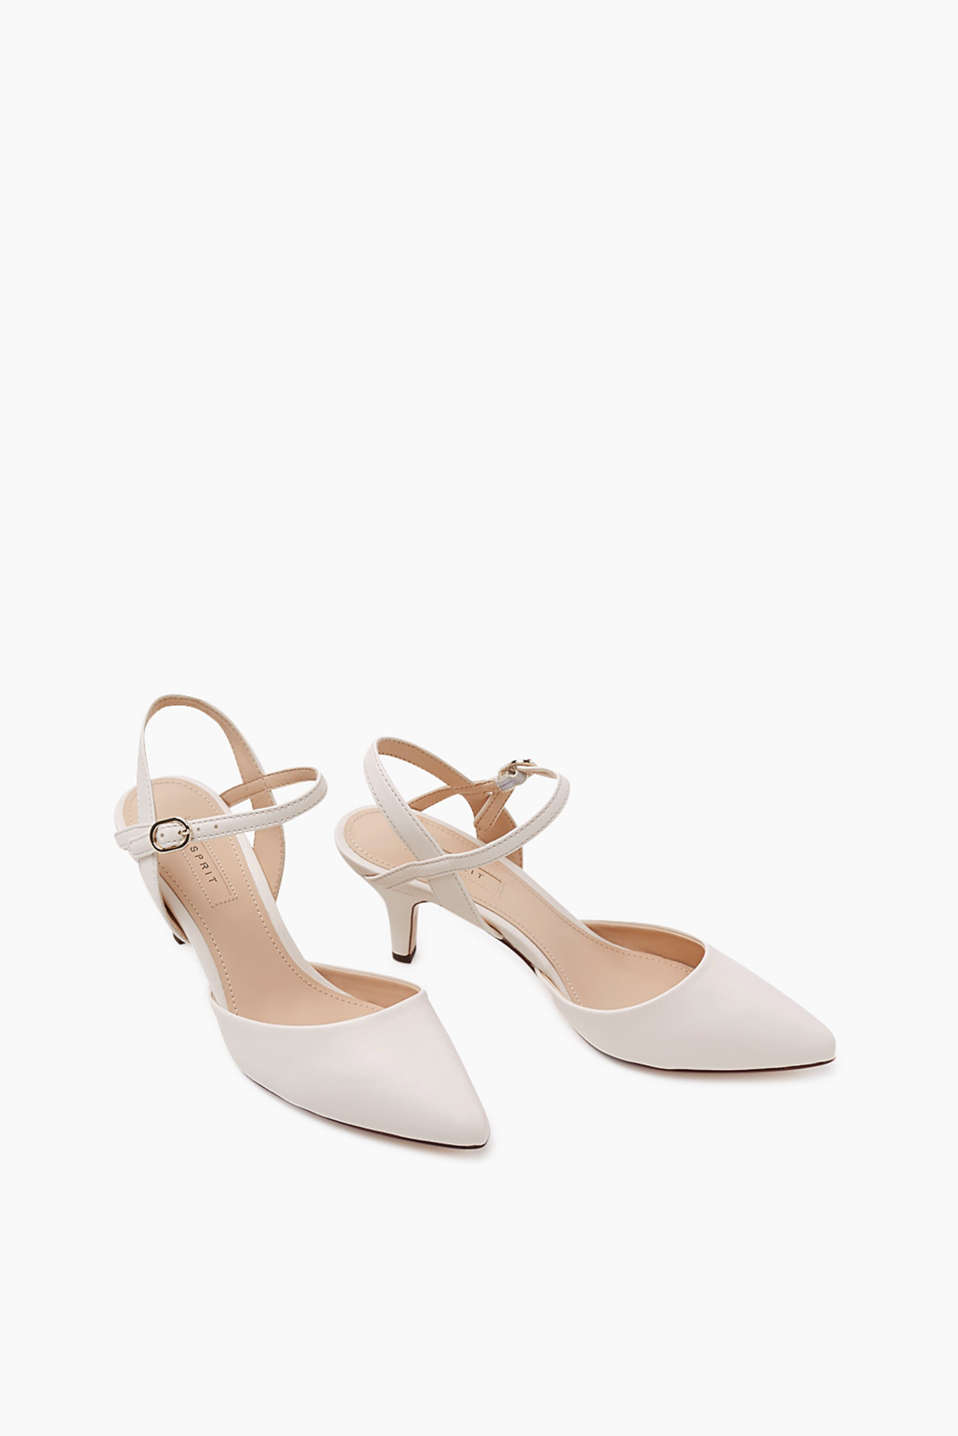 Pointed court shoes with slingback straps